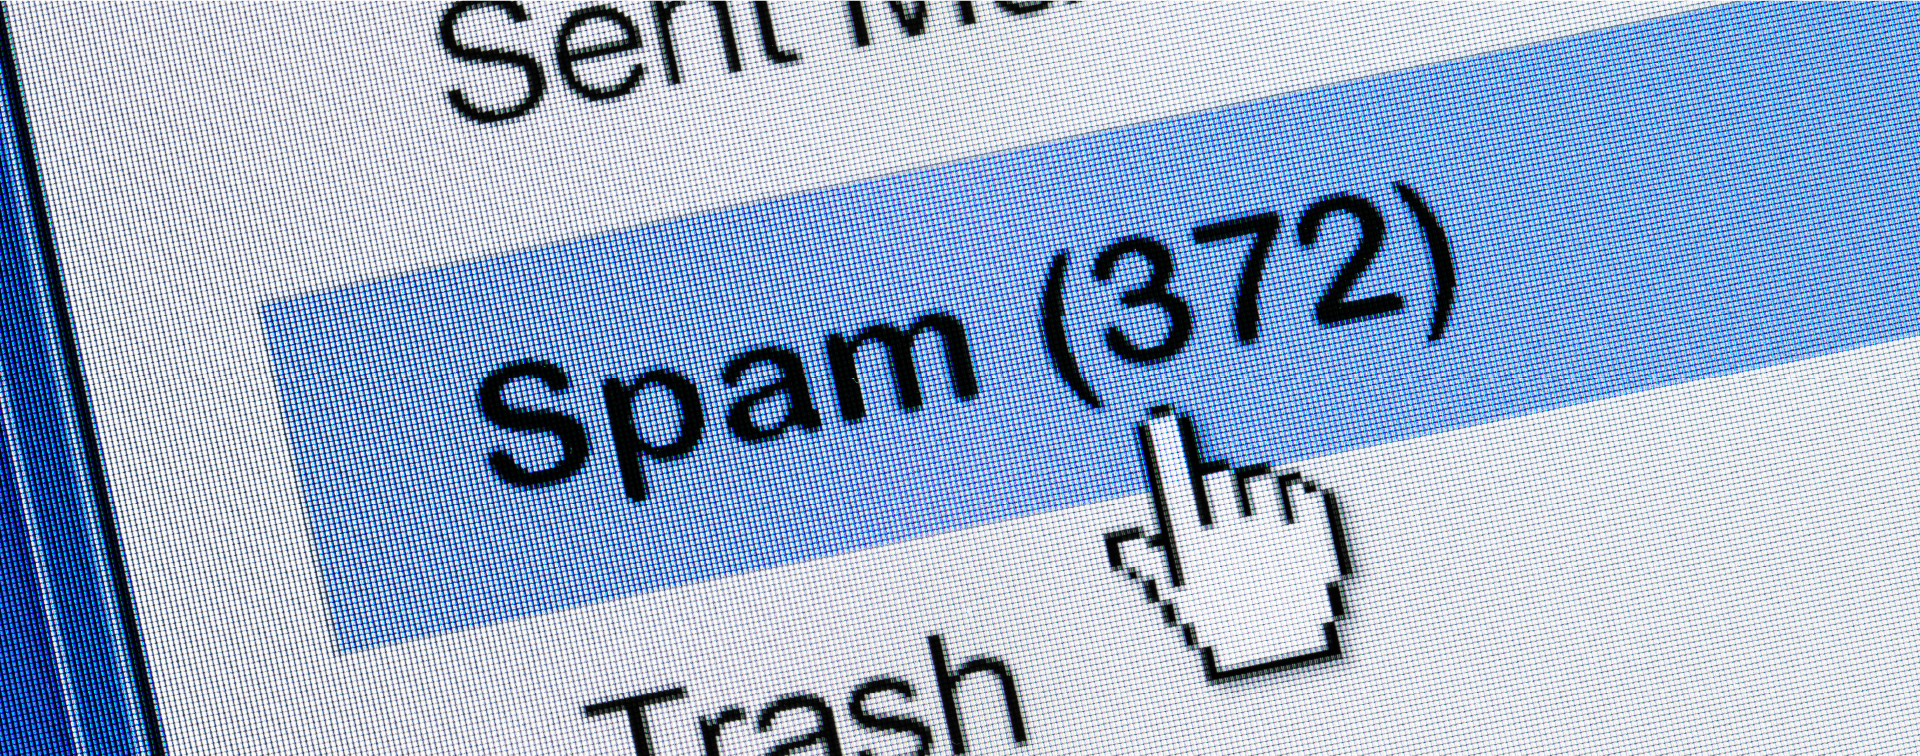 Mouse cursor pointing to an inbox spam folder showing 372 spam emails.